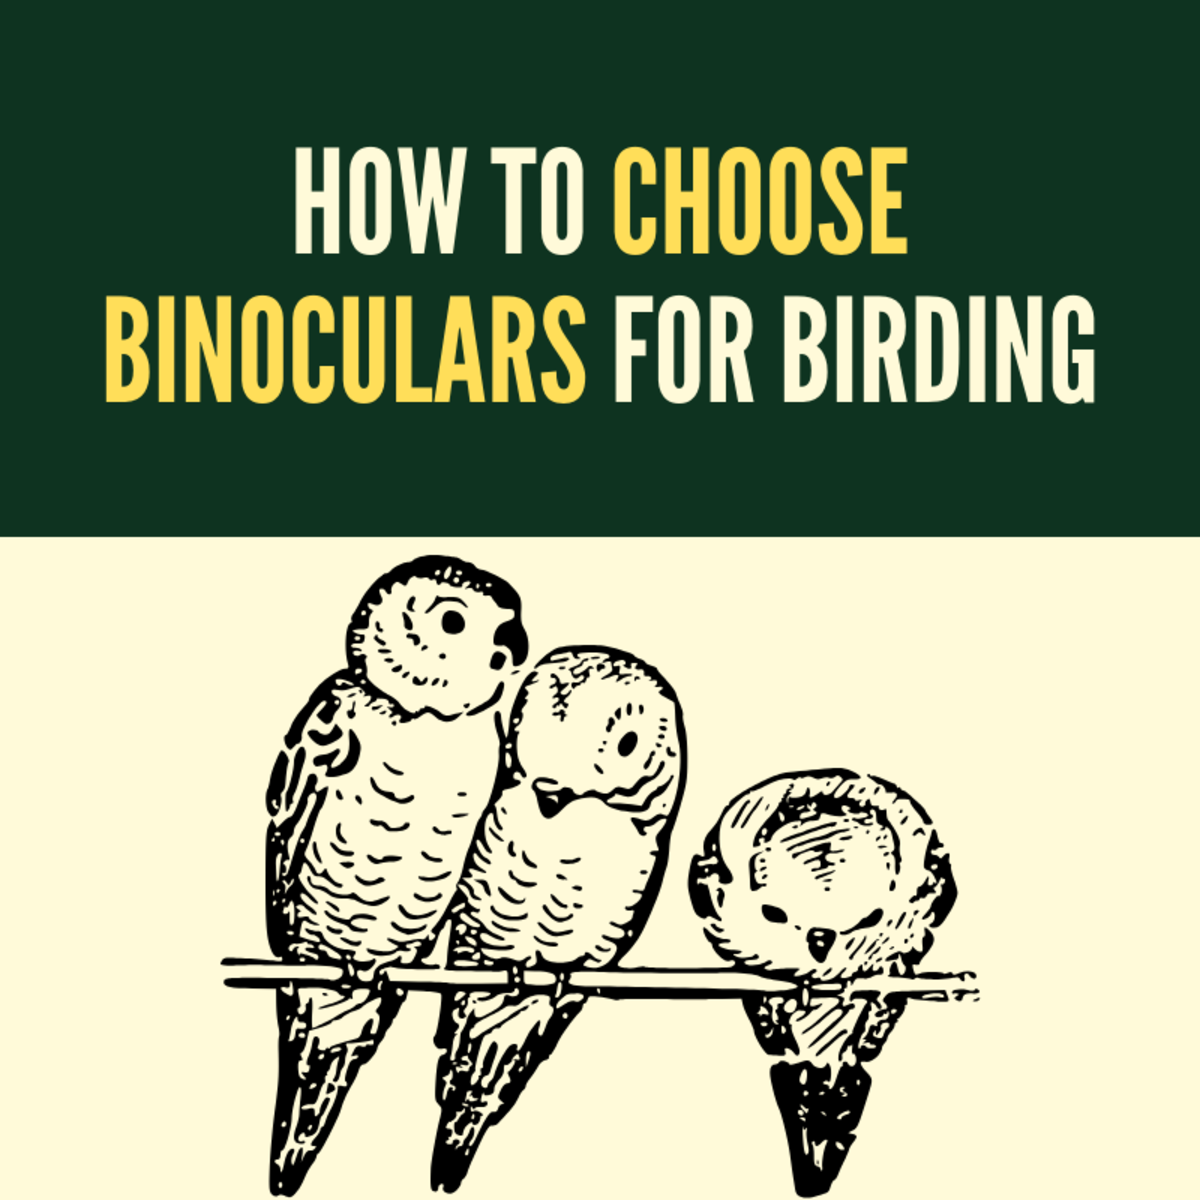 Birding: The Complete Guide to Choosing and Using Binoculars